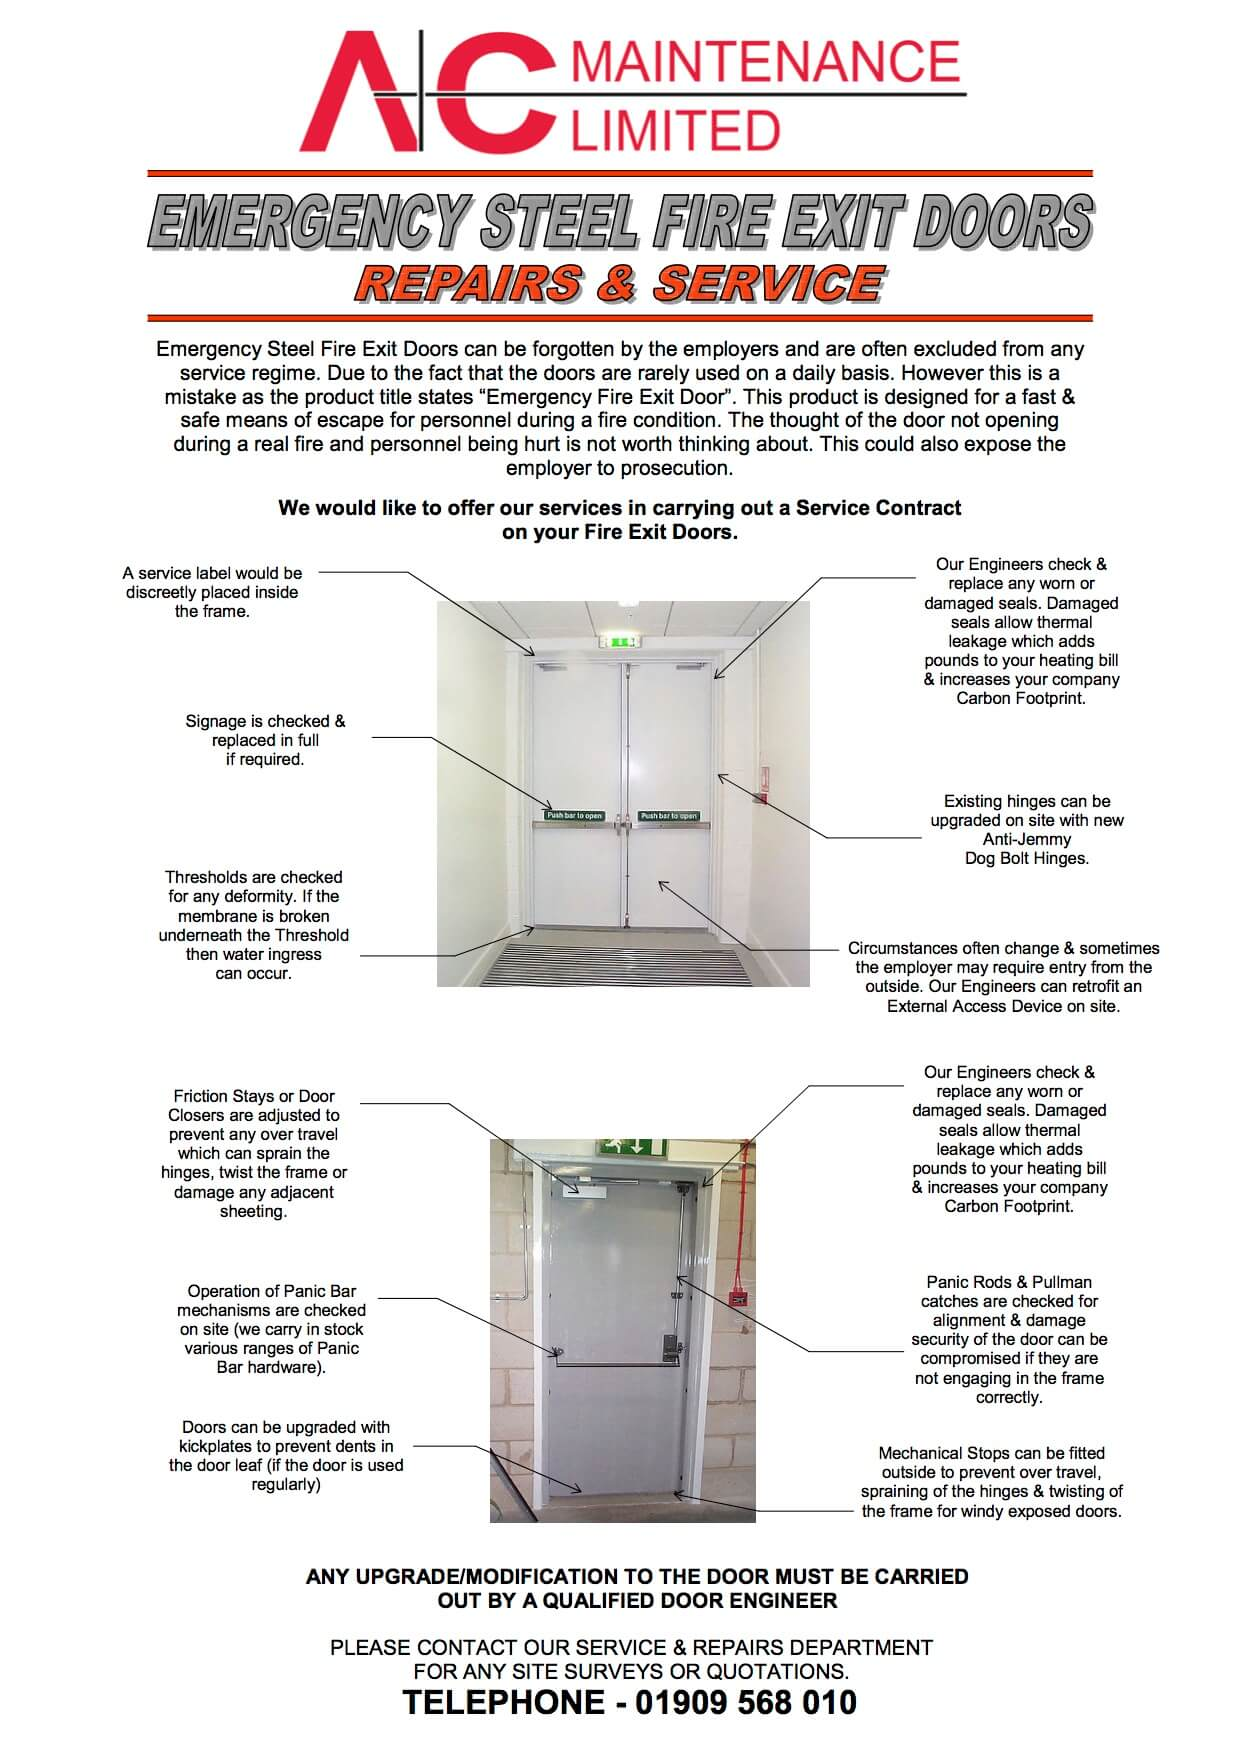 http://www.aandcmaintenance.co.uk/wp-content/uploads/Fire-Escape-Door_Repairs-Upgrades.jpg